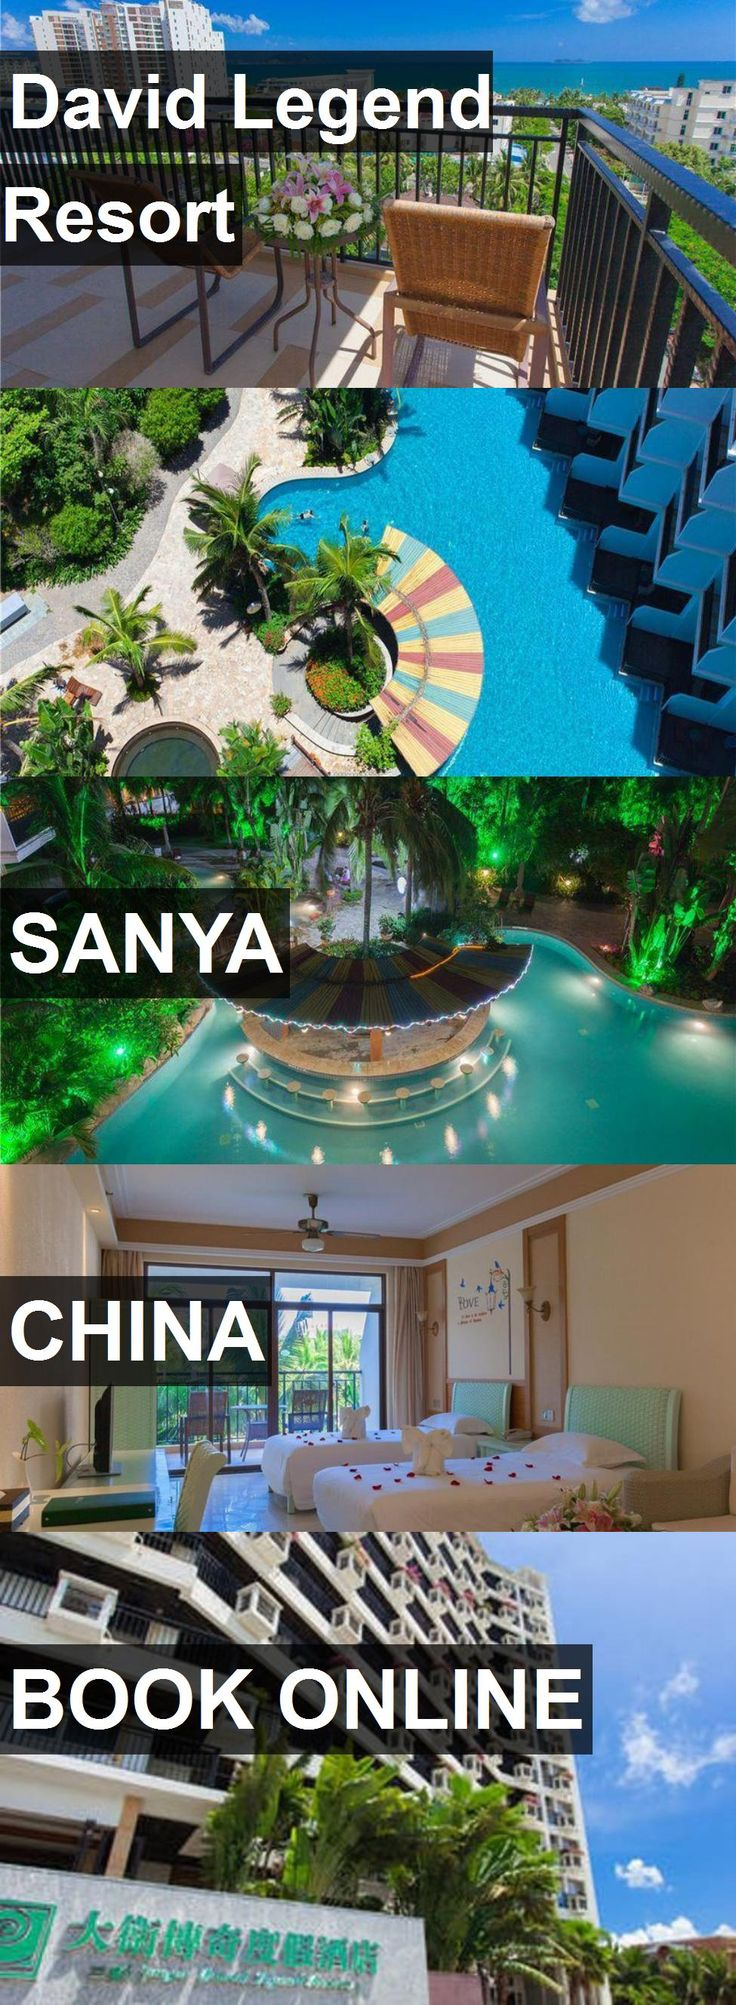 Hotel David Legend Resort in Sanya, China. For more information, photos, reviews and best prices please follow the link. #China #Sanya #travel #vacation #hotel